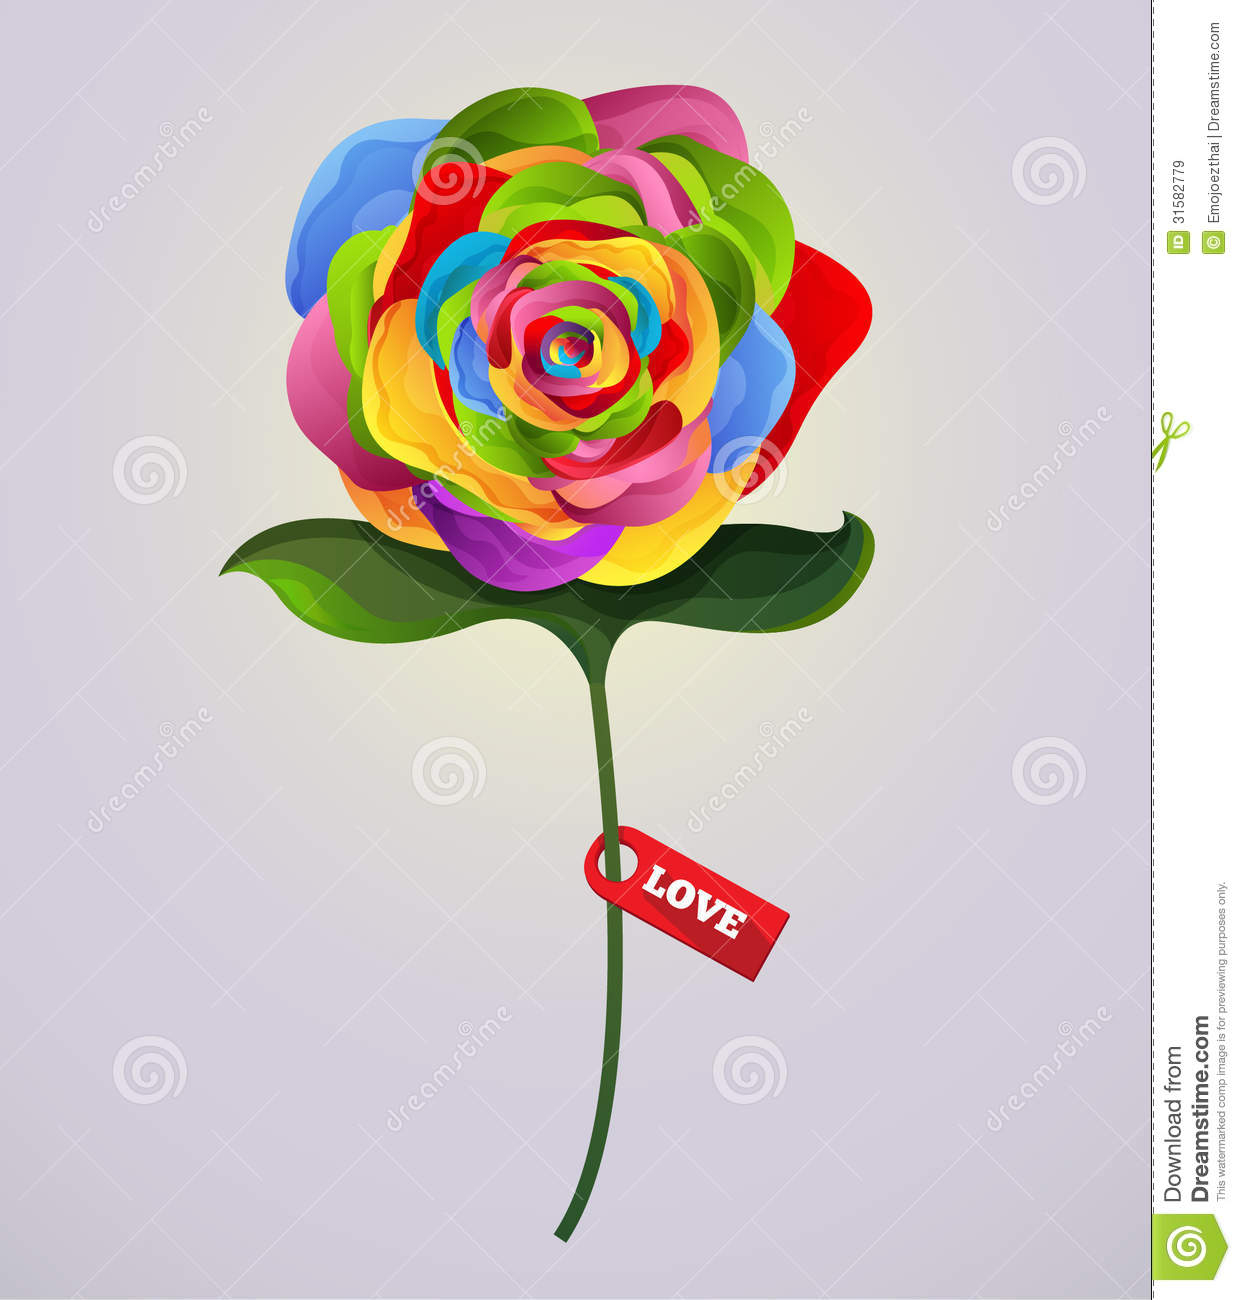 how to draw a colorful rose